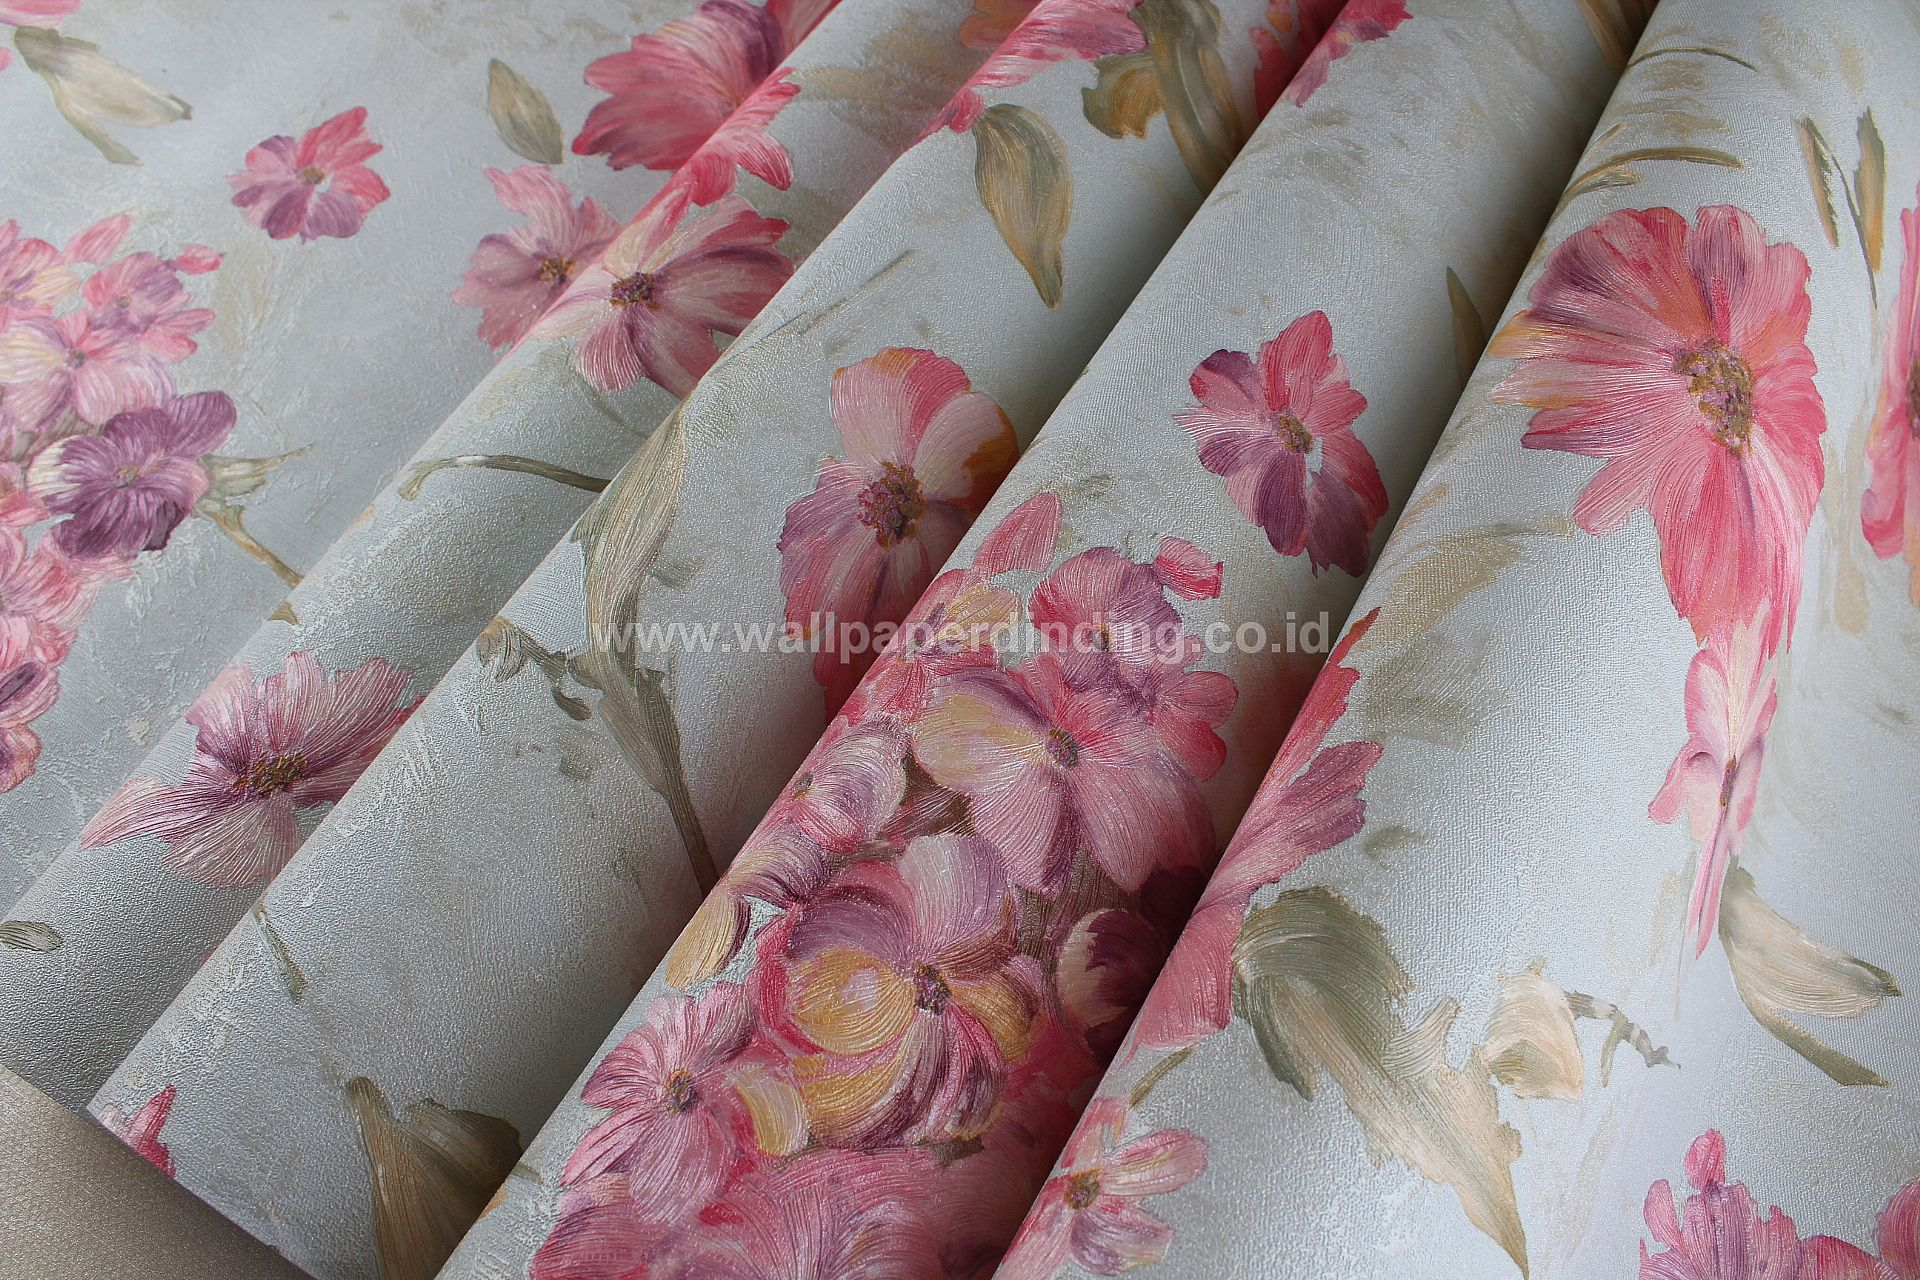 Wallpaper Dinding Bunga Pink MG-106505 - Java Wallpaper